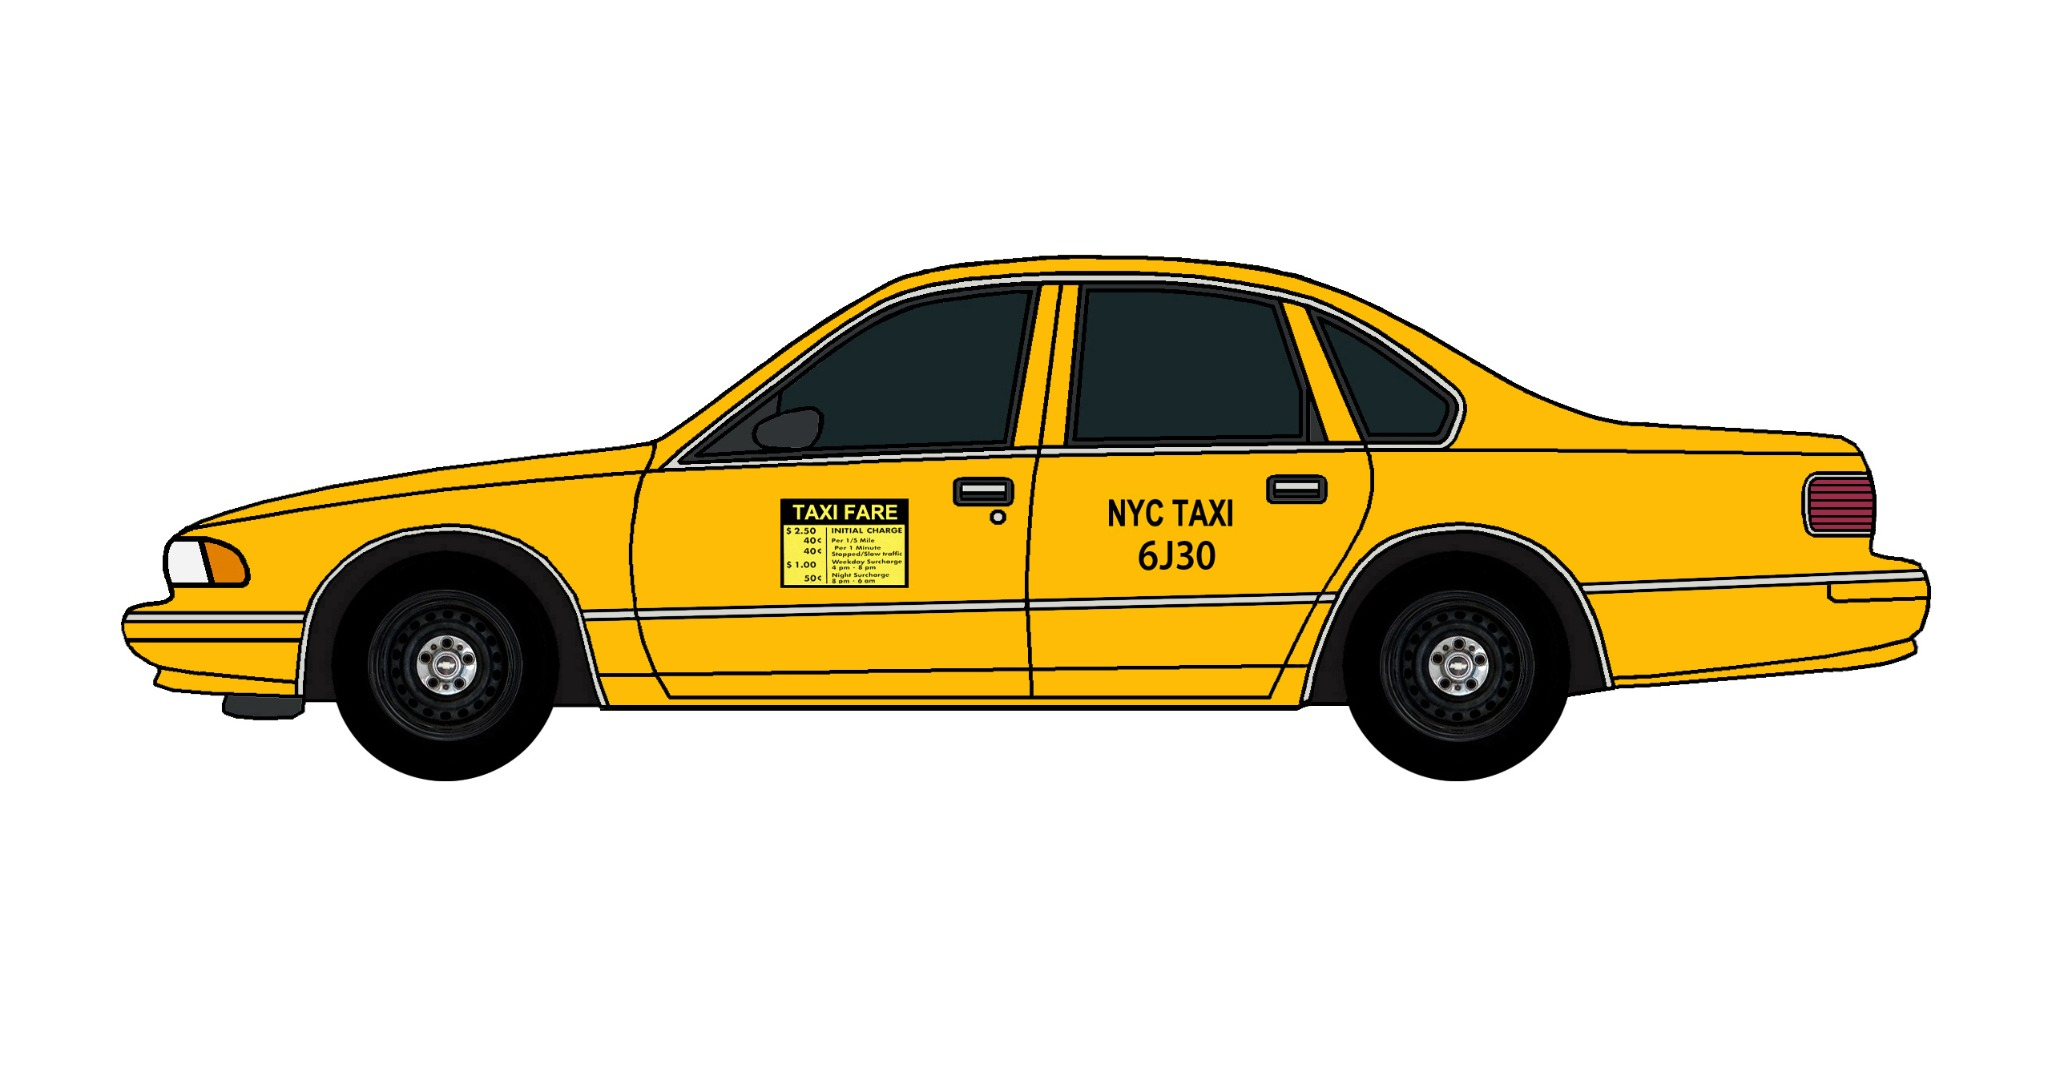 1995 Chevy Caprice NYC TAXI